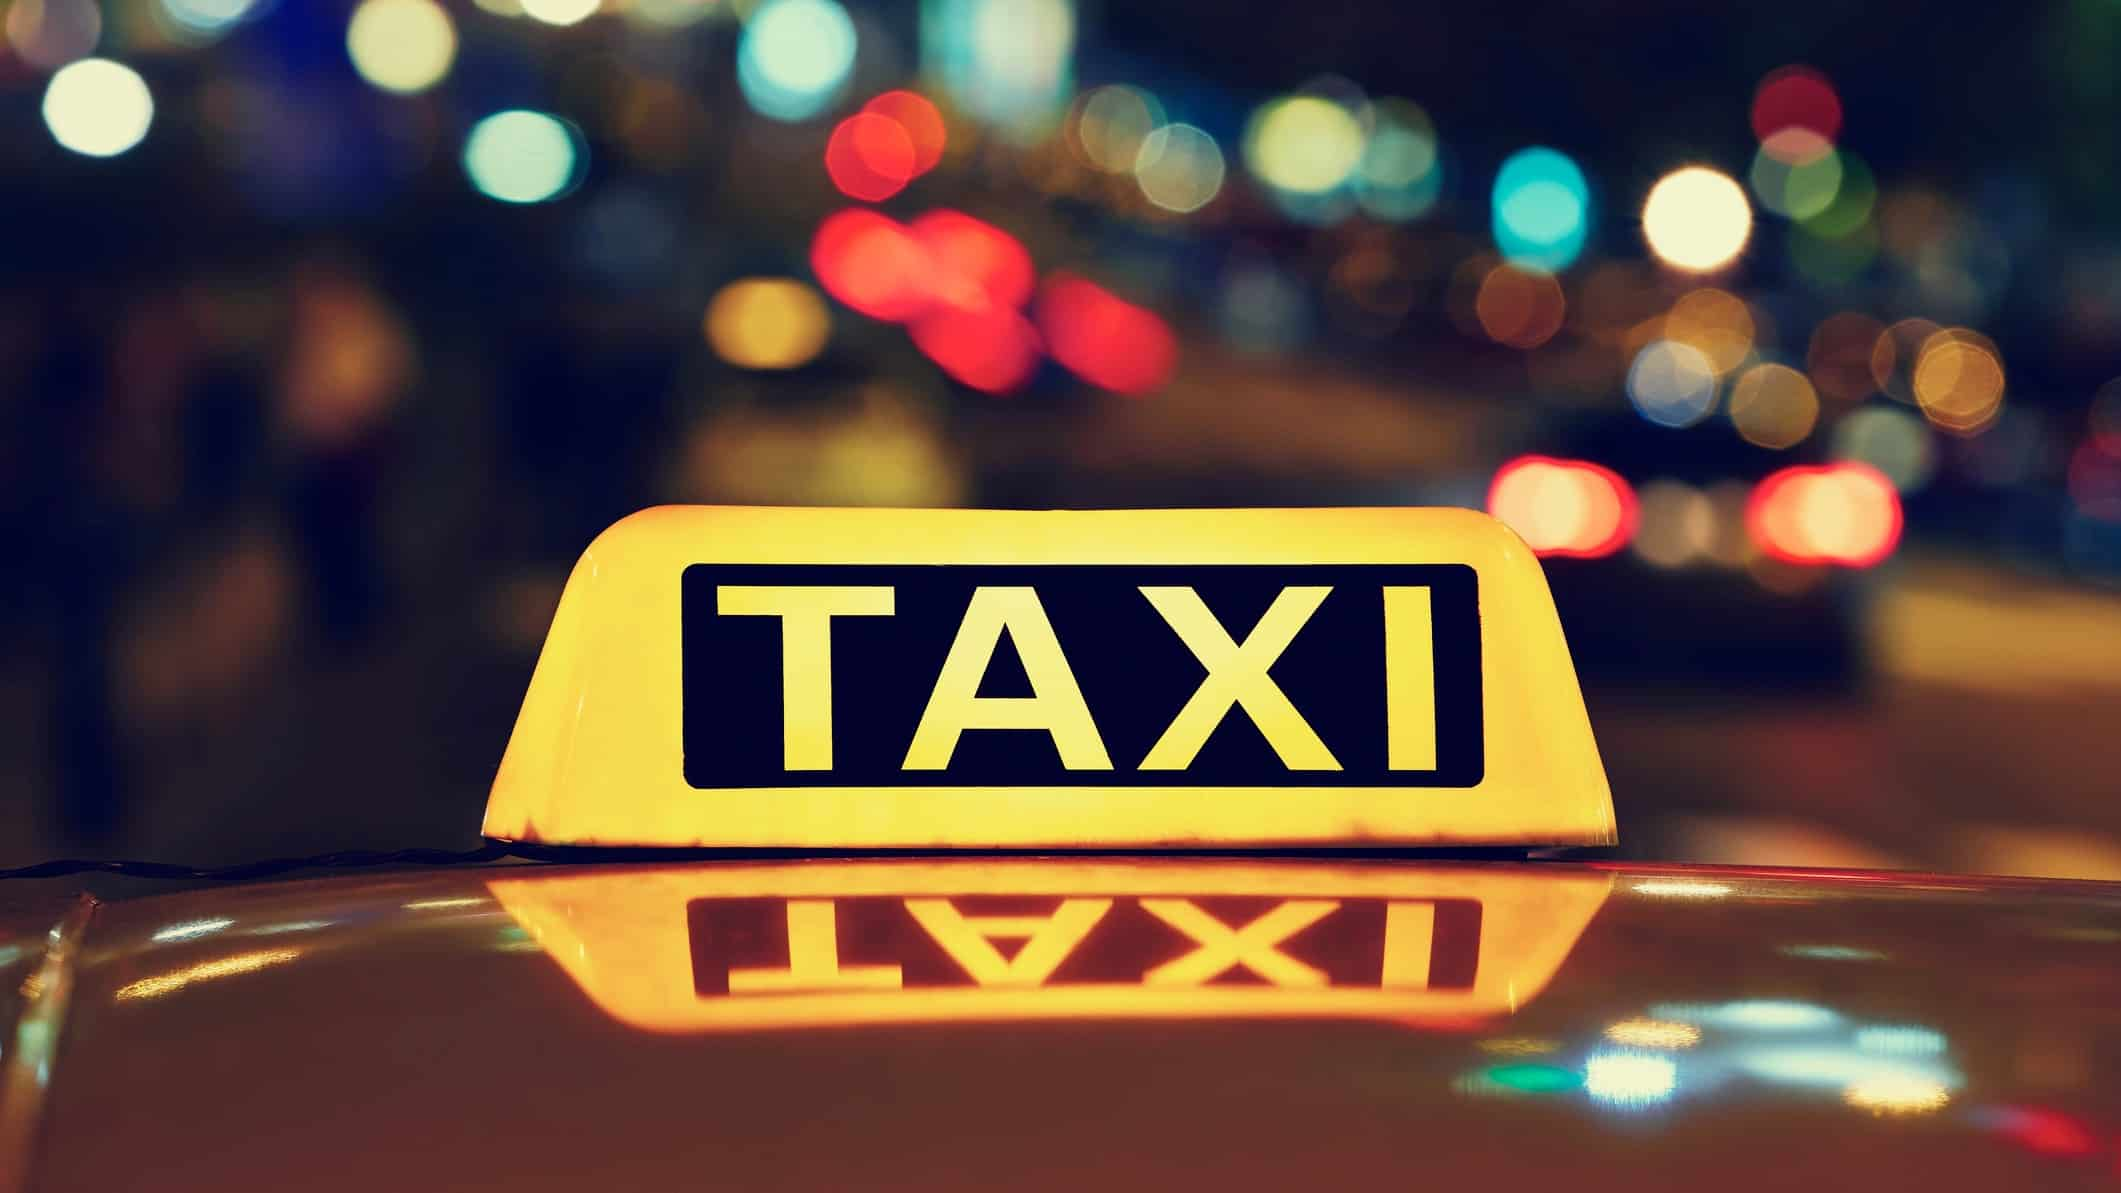 illuminated taxi sign against backdrop of city lights